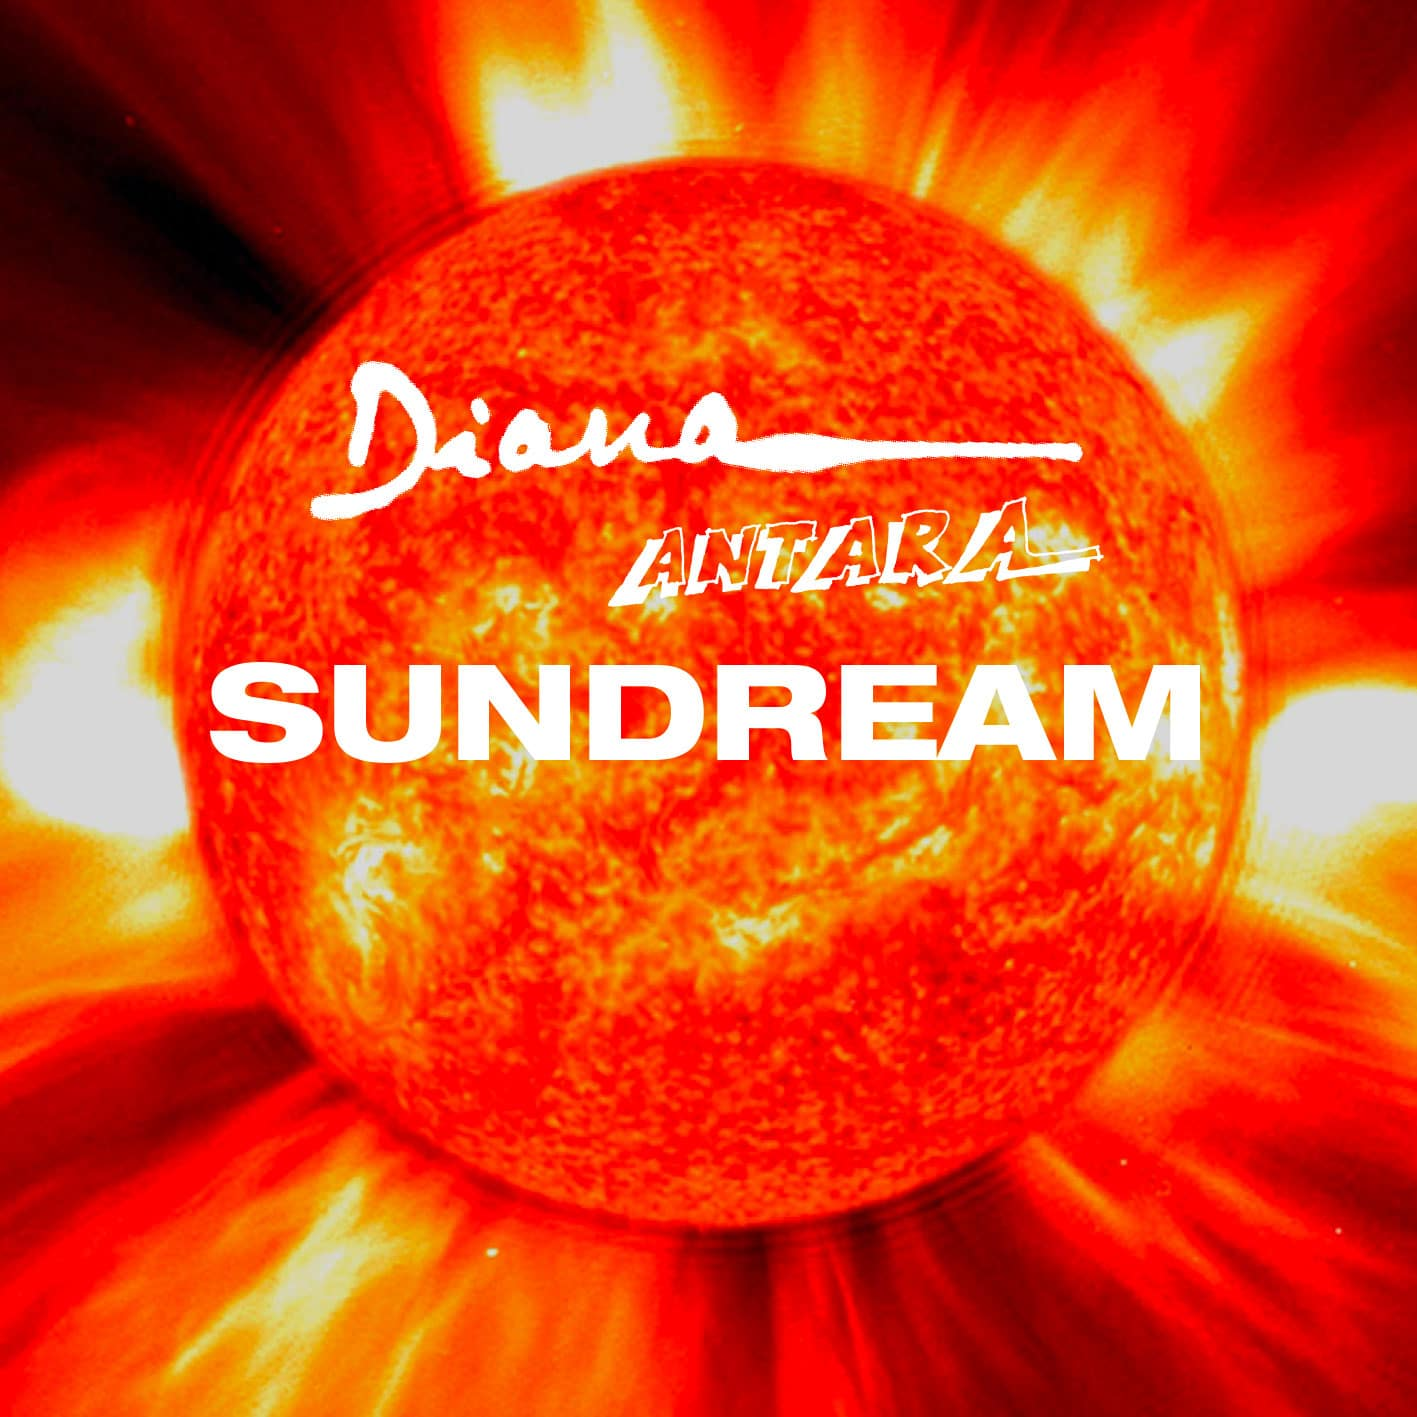 Sundream